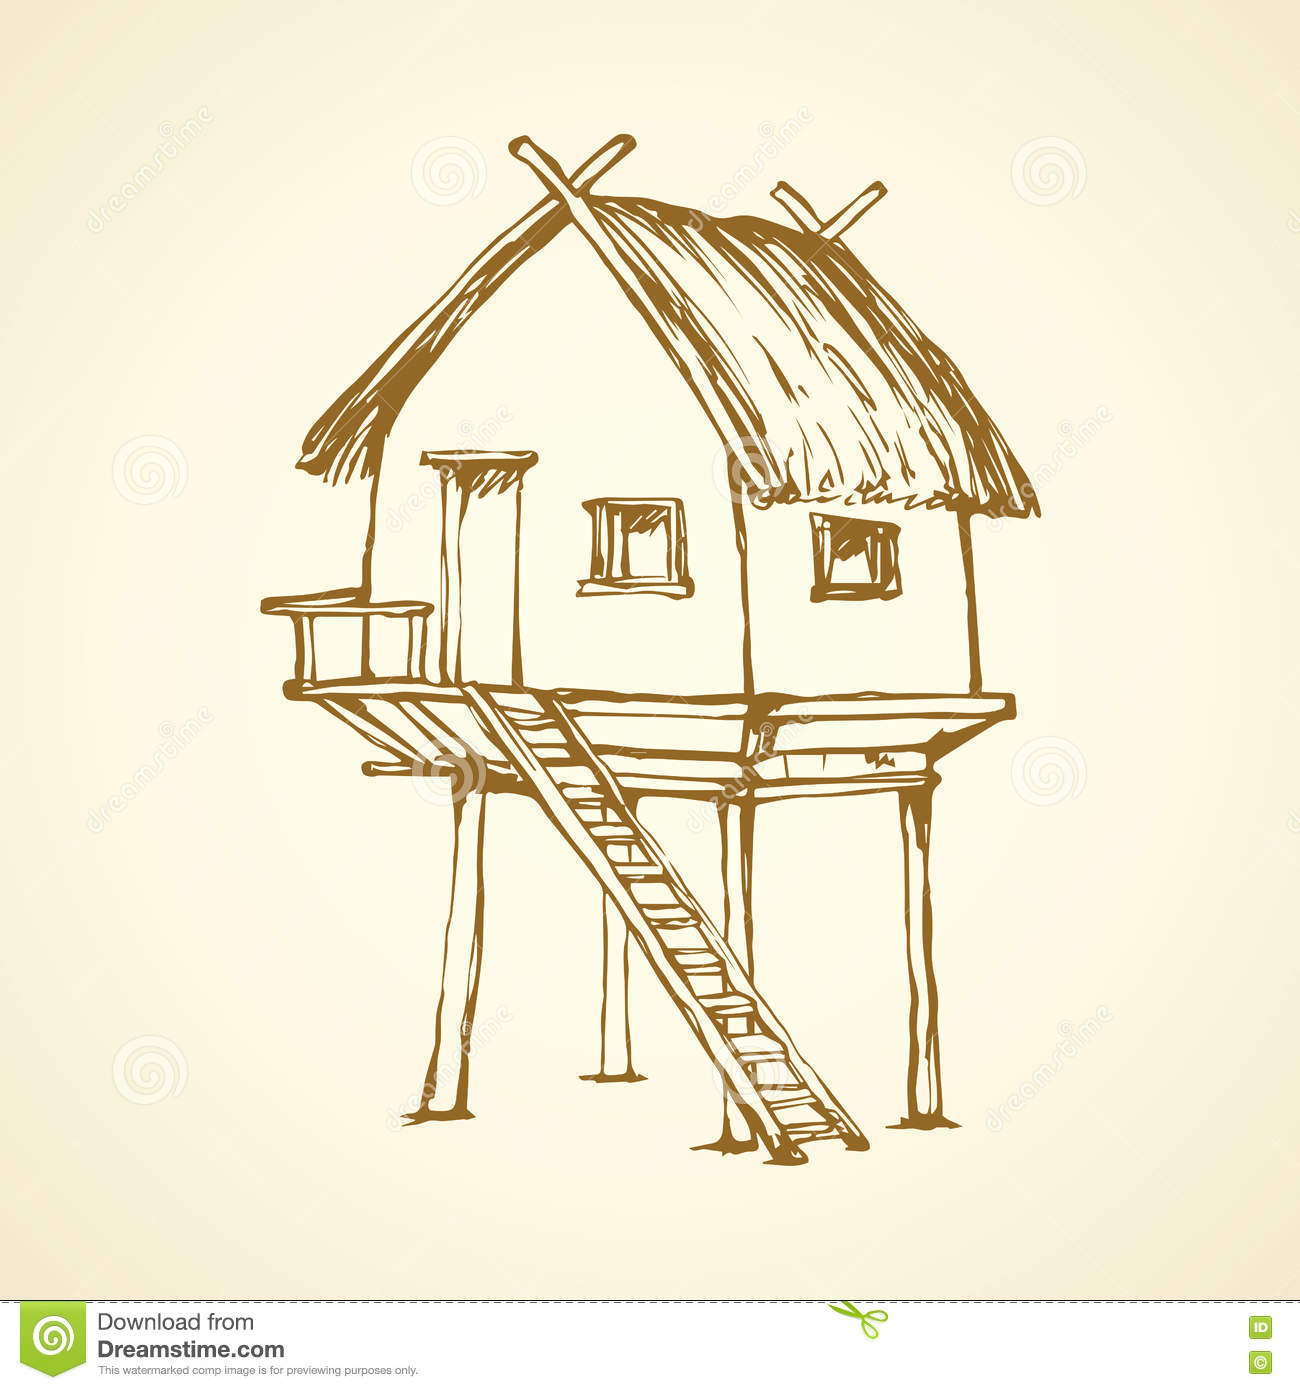 Beach hut cartoons illustrations vector stock images for Beach house drawing